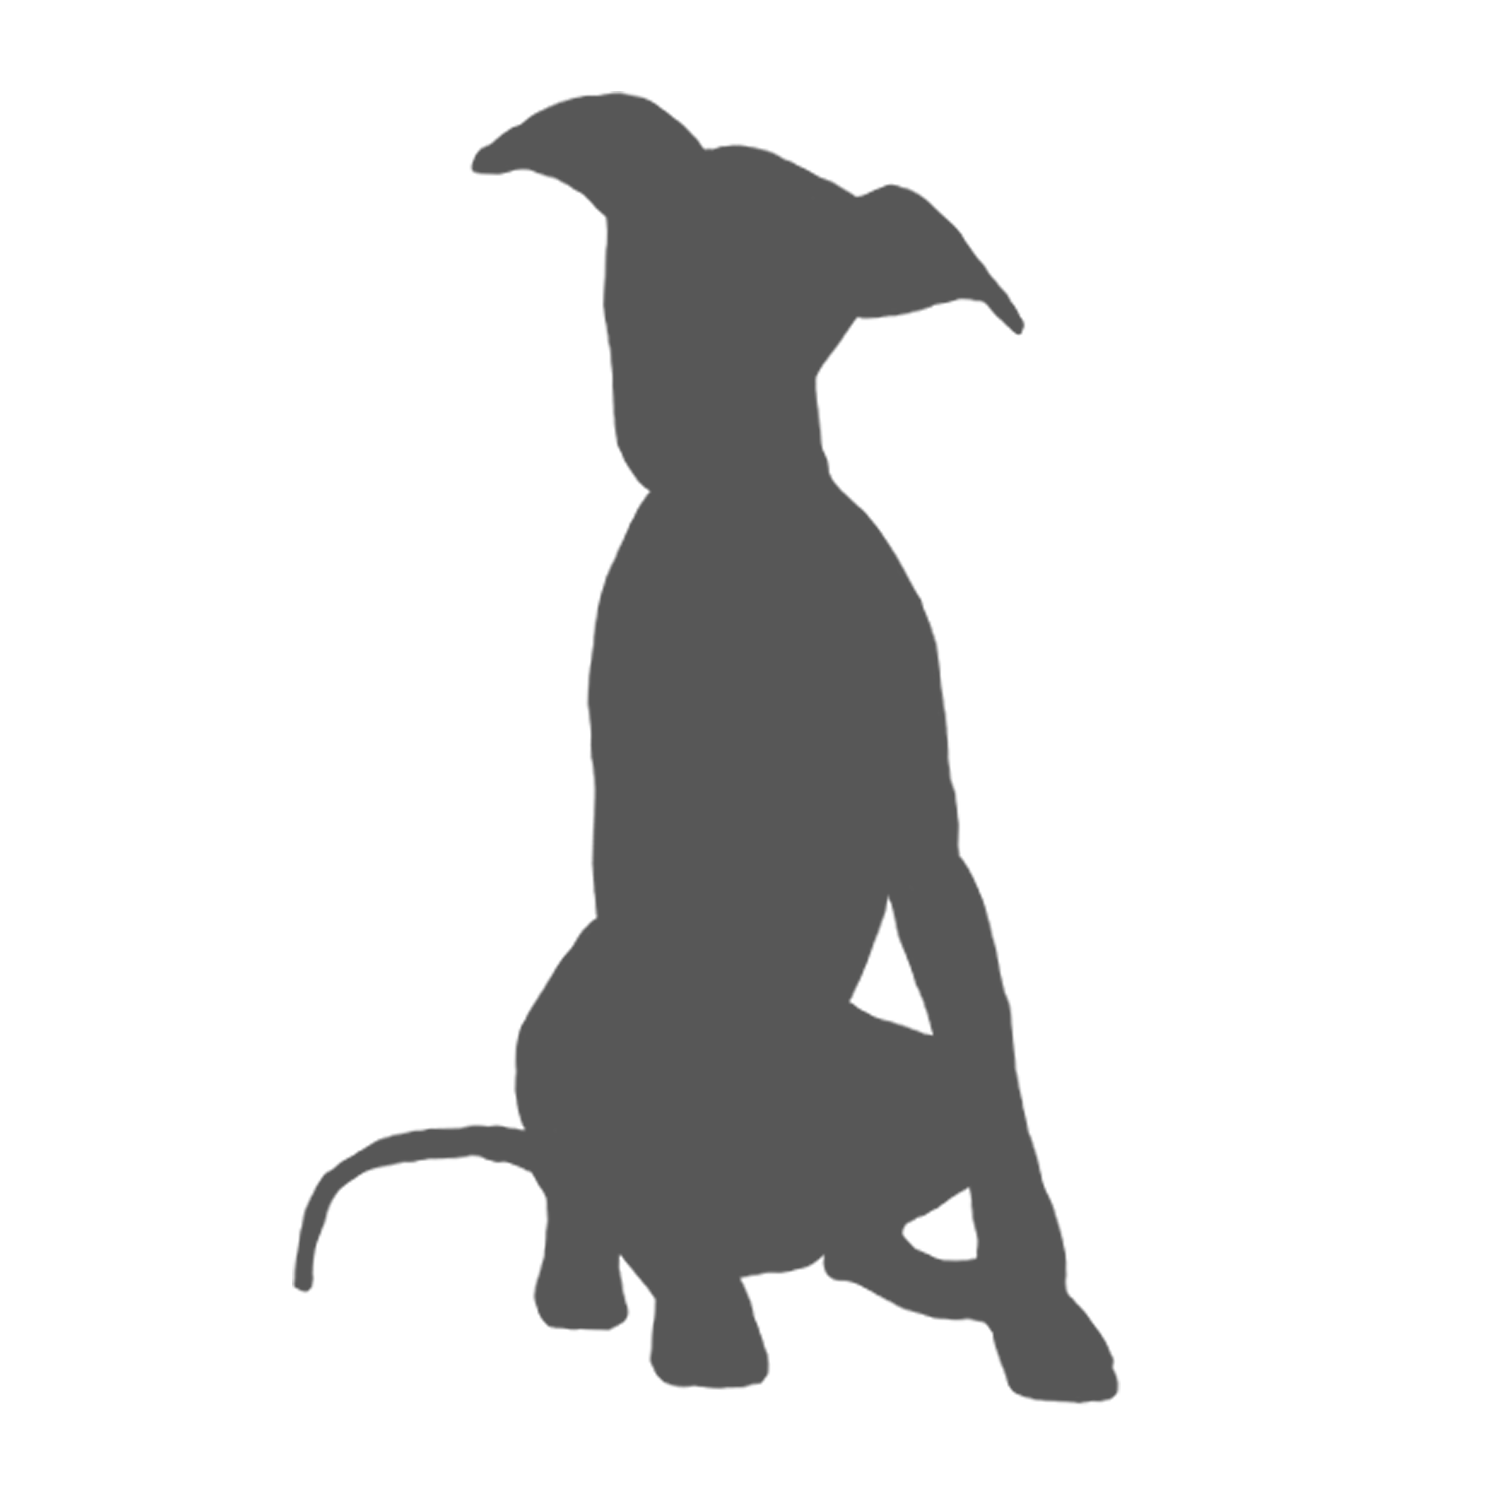 Whippet silhouette google search. Dogs clipart yoga